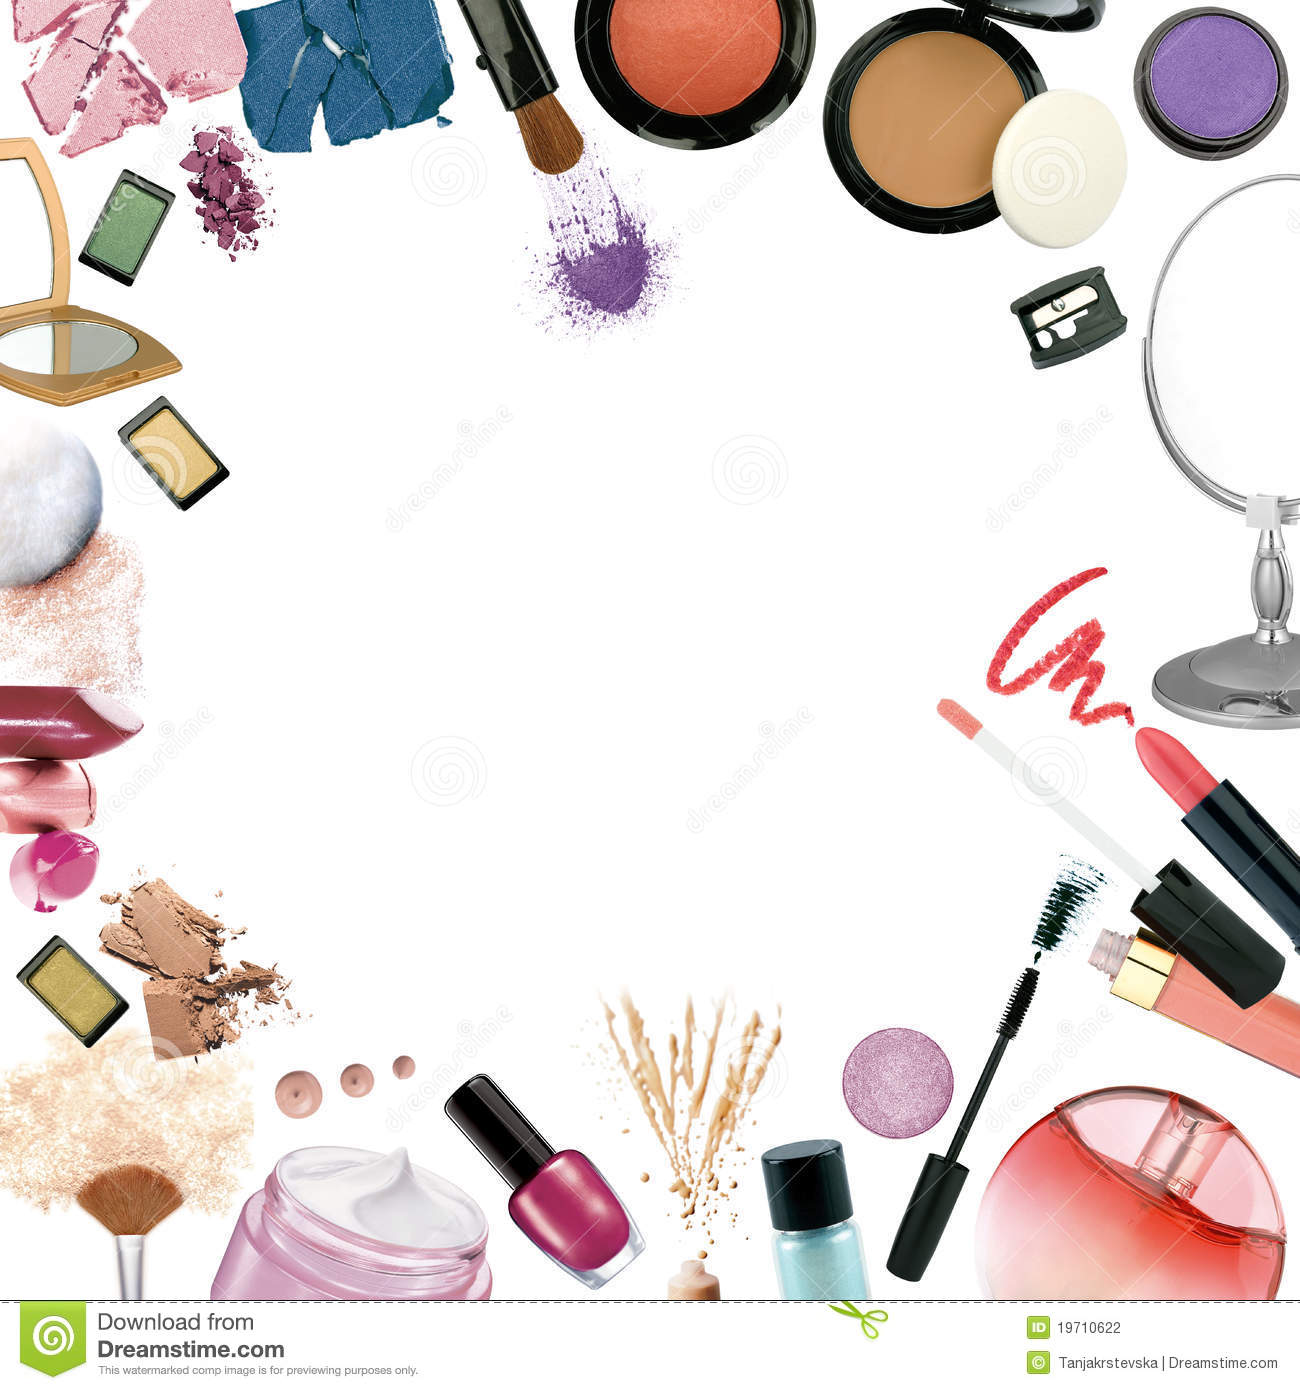 Wallpaper Border Pin Clipart Makeup 3 Make Up S Stock Photography